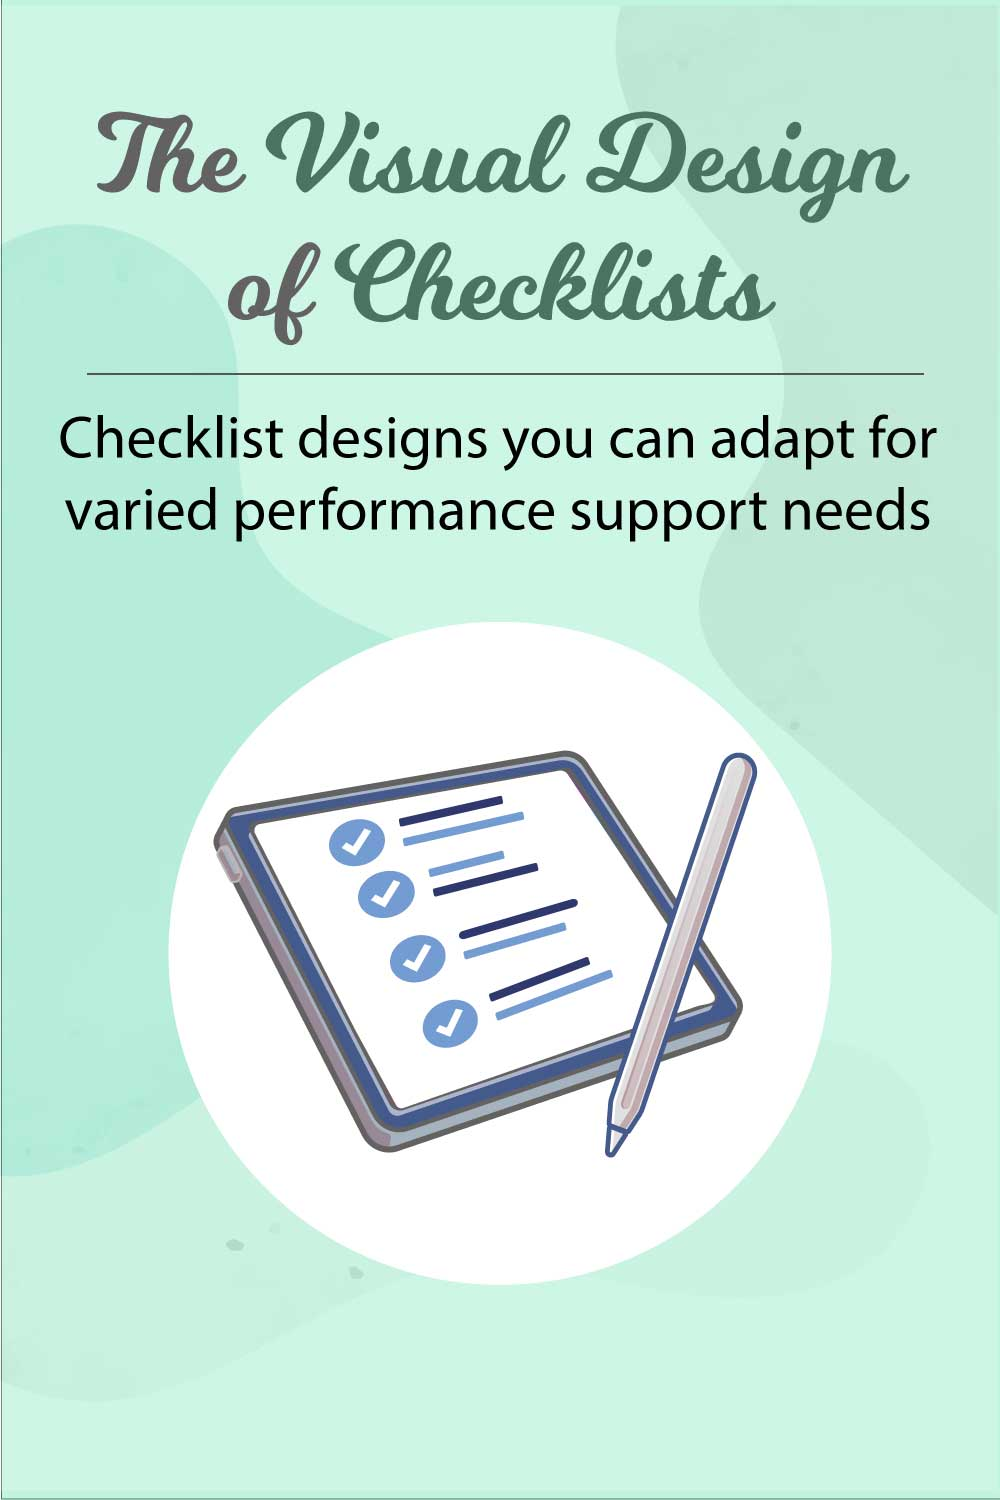 The Visual Design of Checklists